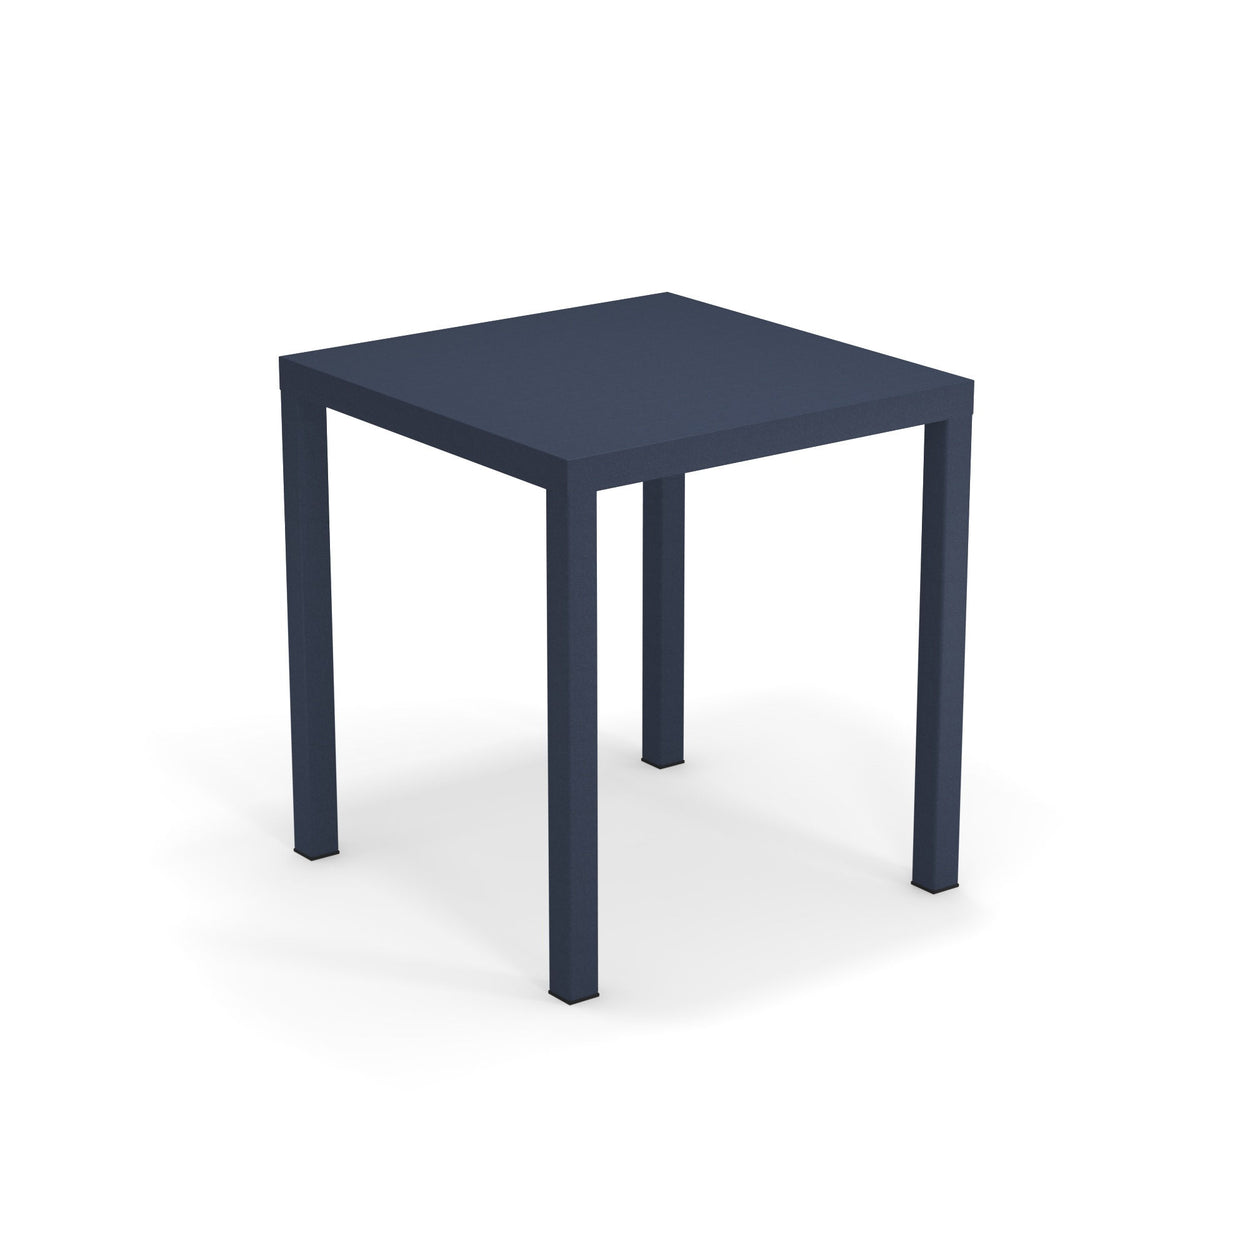 EMU Nova Square Table 70 x 70 cm (Set of 2)